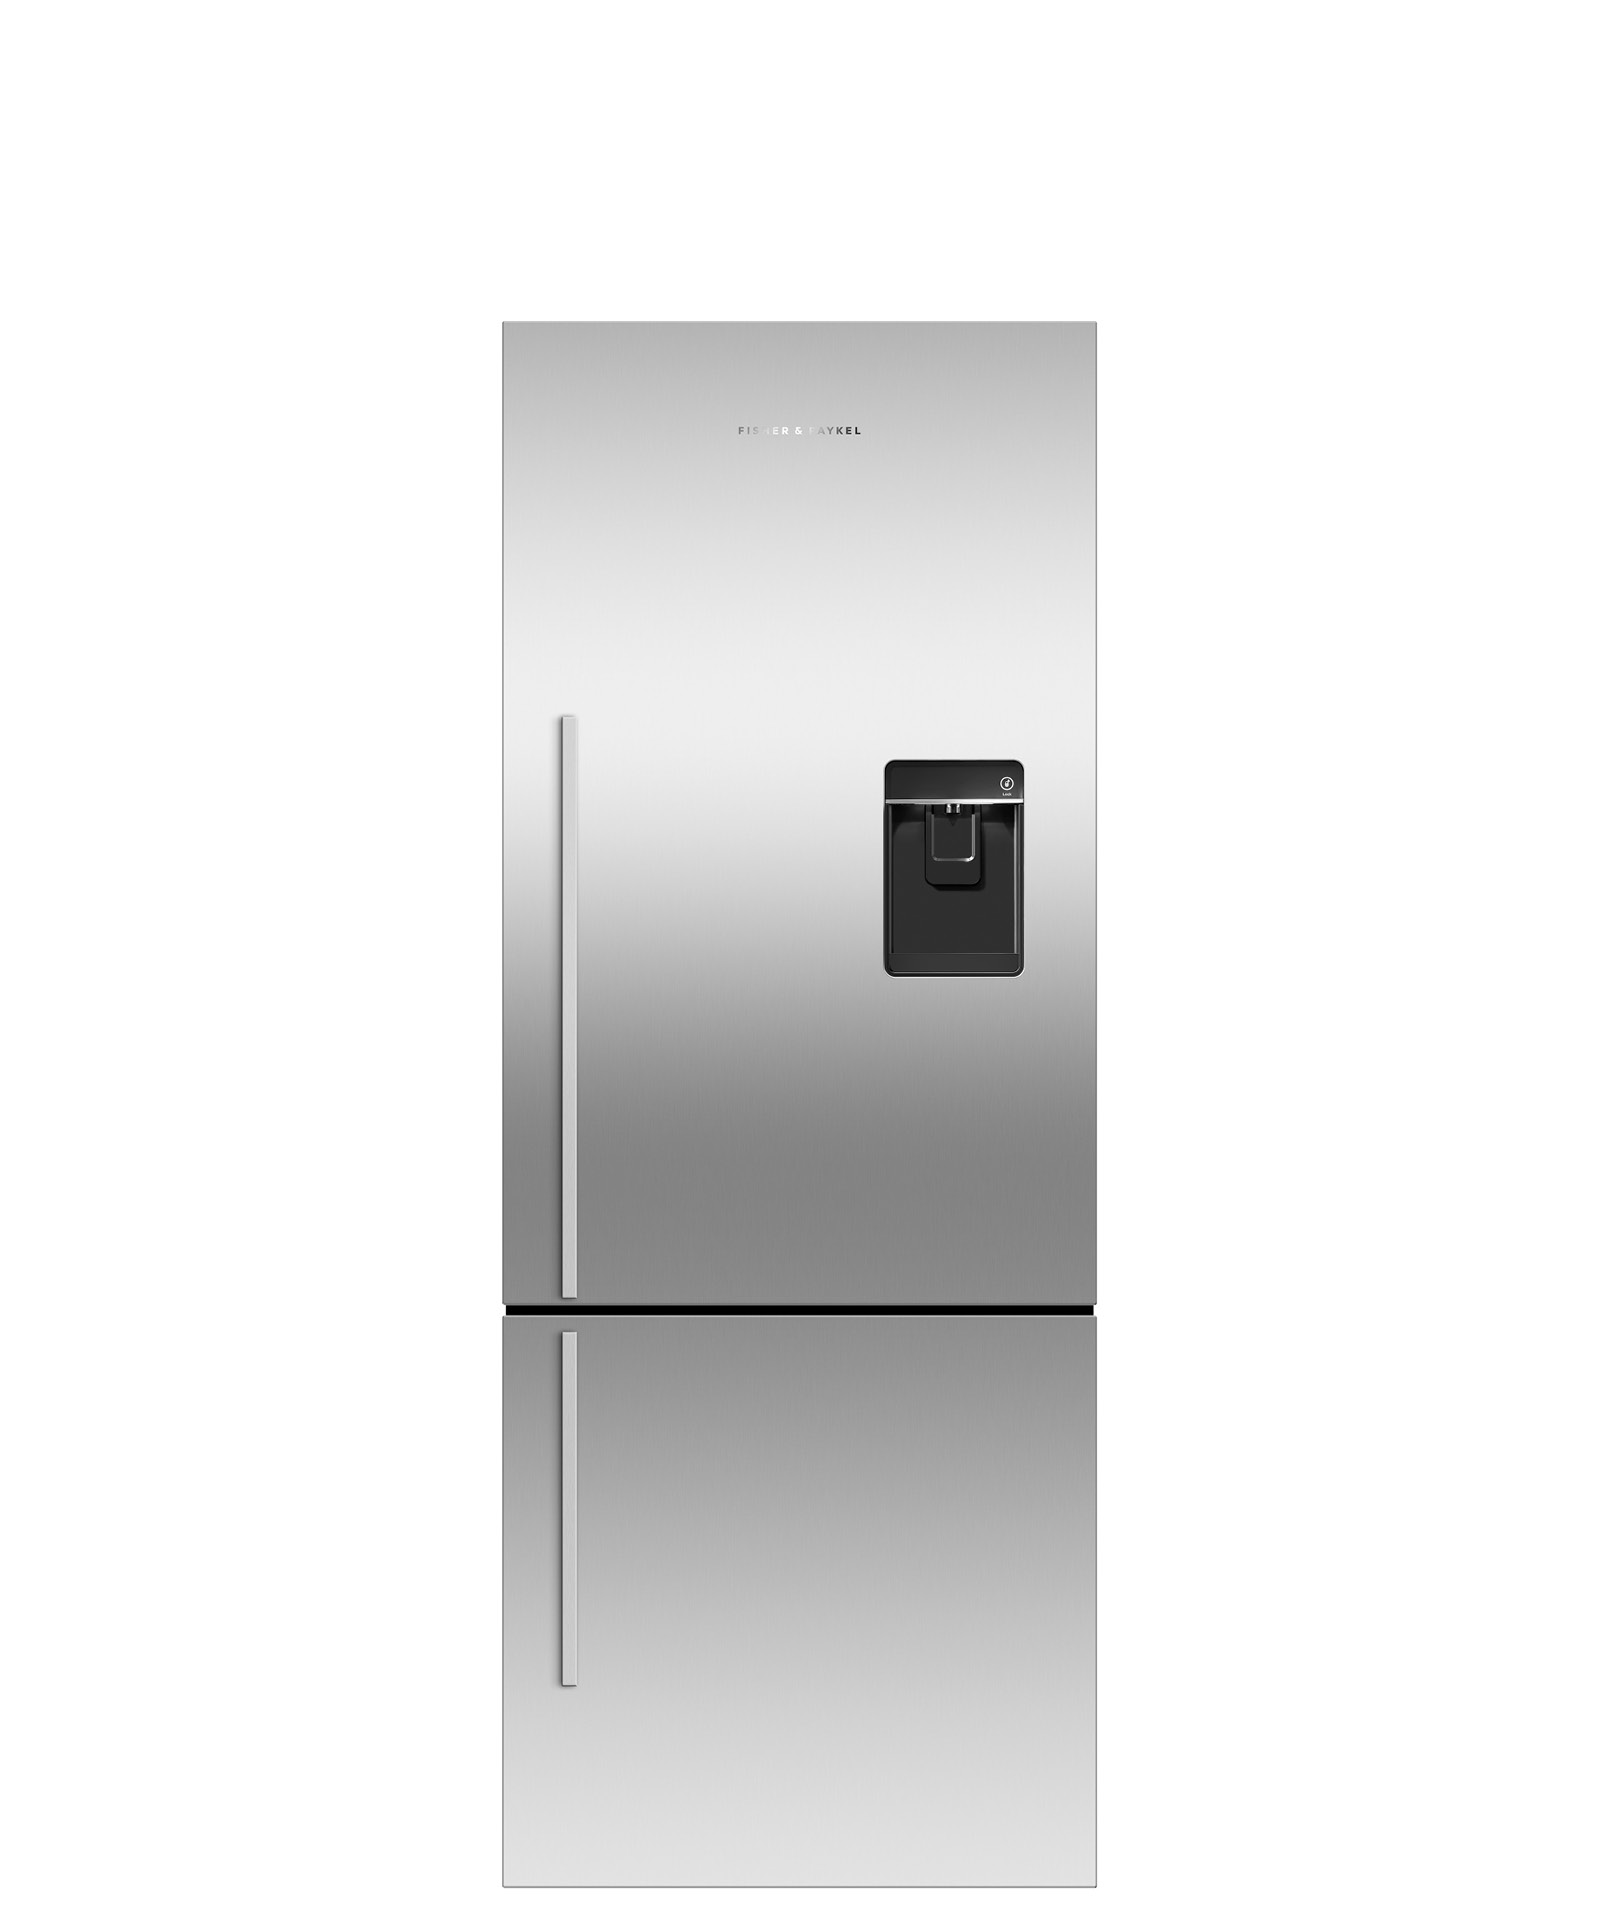 Model: RF135BDRUX4_N | Fisher and Paykel Counter Depth Refrigerator 13.5 cu ft, Ice & Water